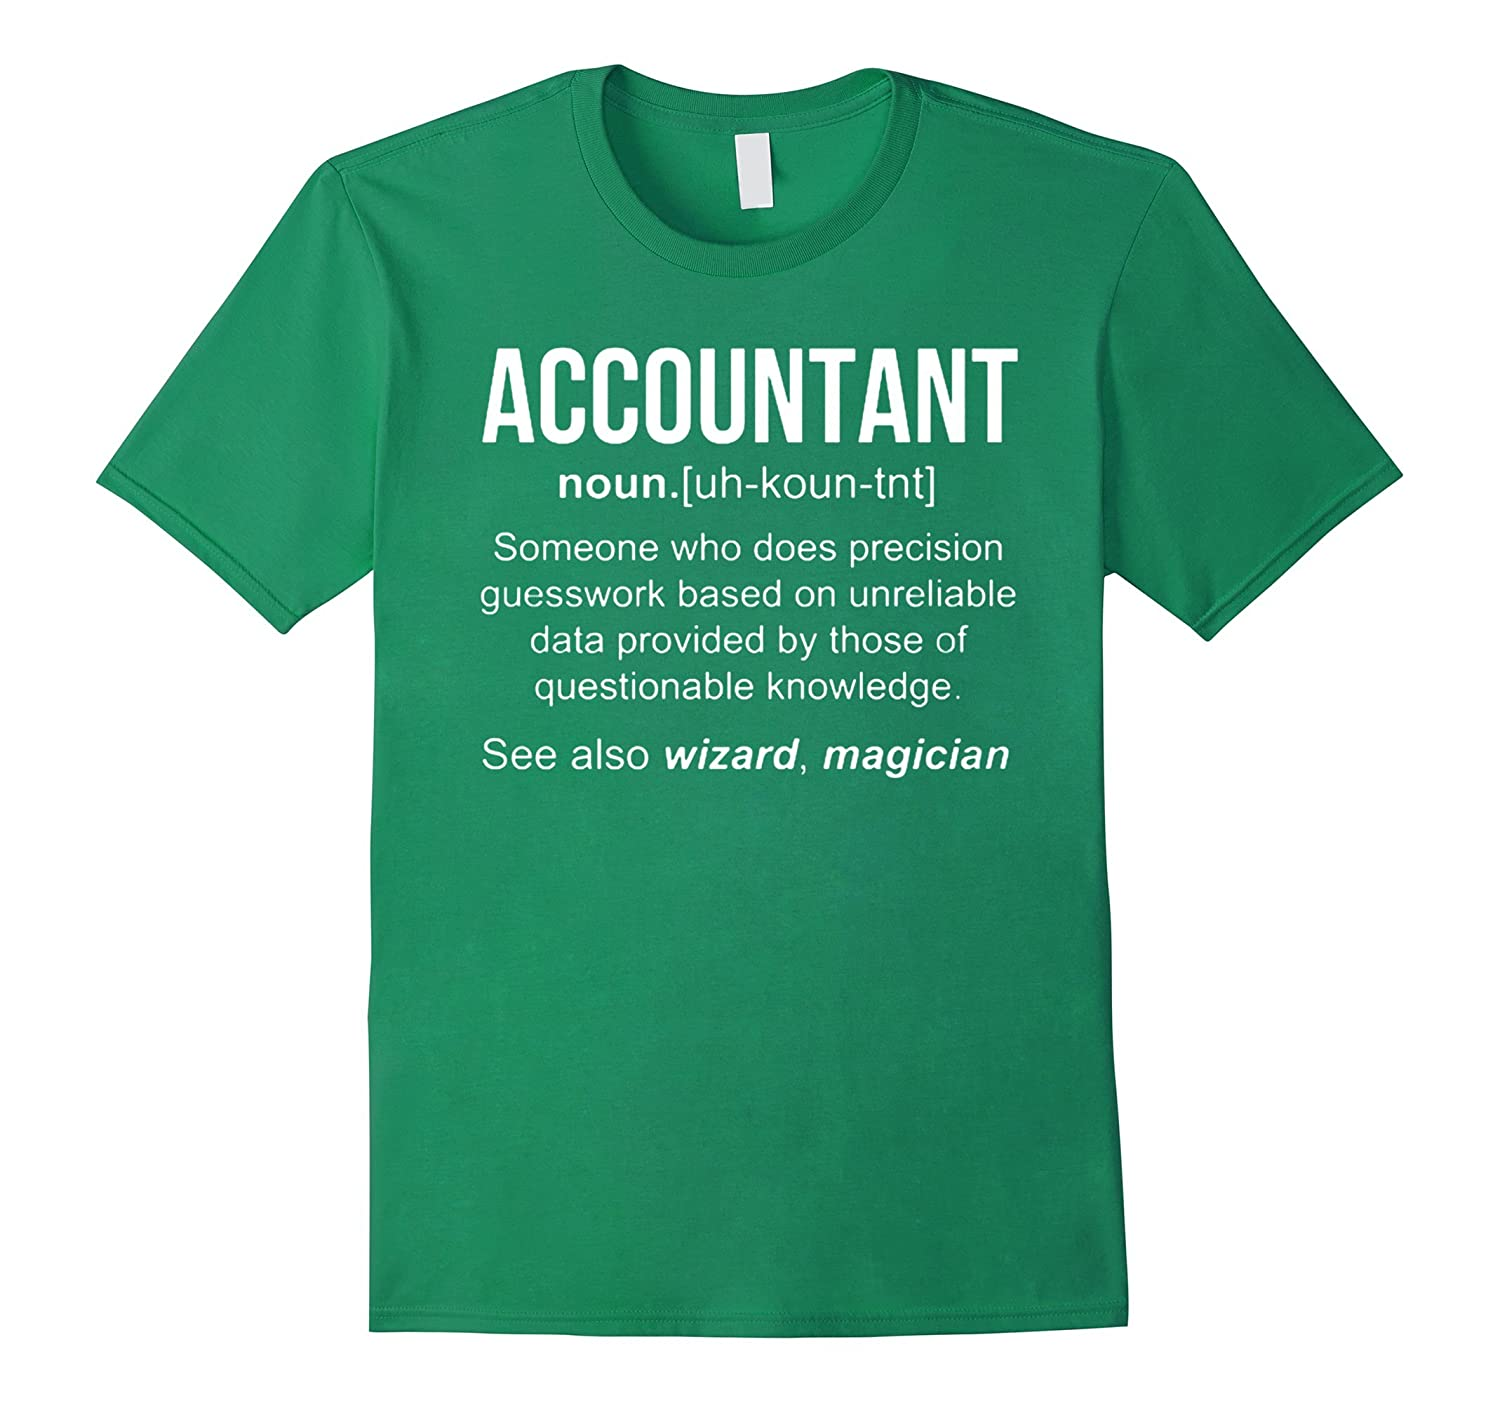 Funny Accountant Meaning T Shirt Accountant Noun Definition-TJ